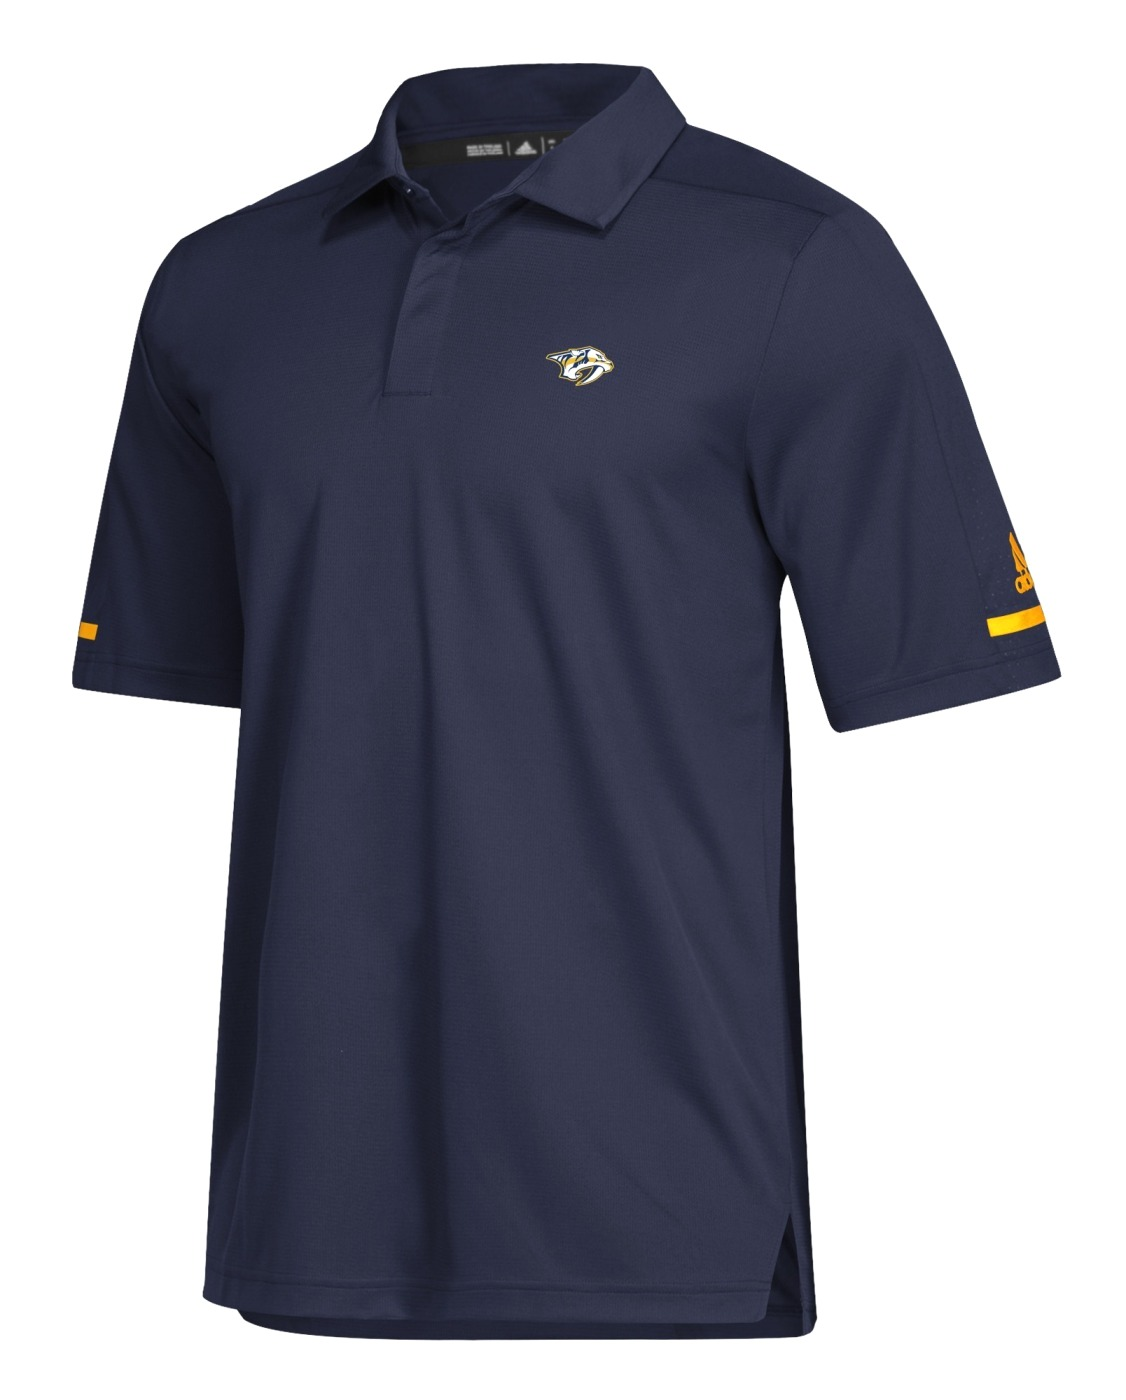 Nashville Predators Adidas NHL Men's 2018 Authentic Game Day Polo Shirt